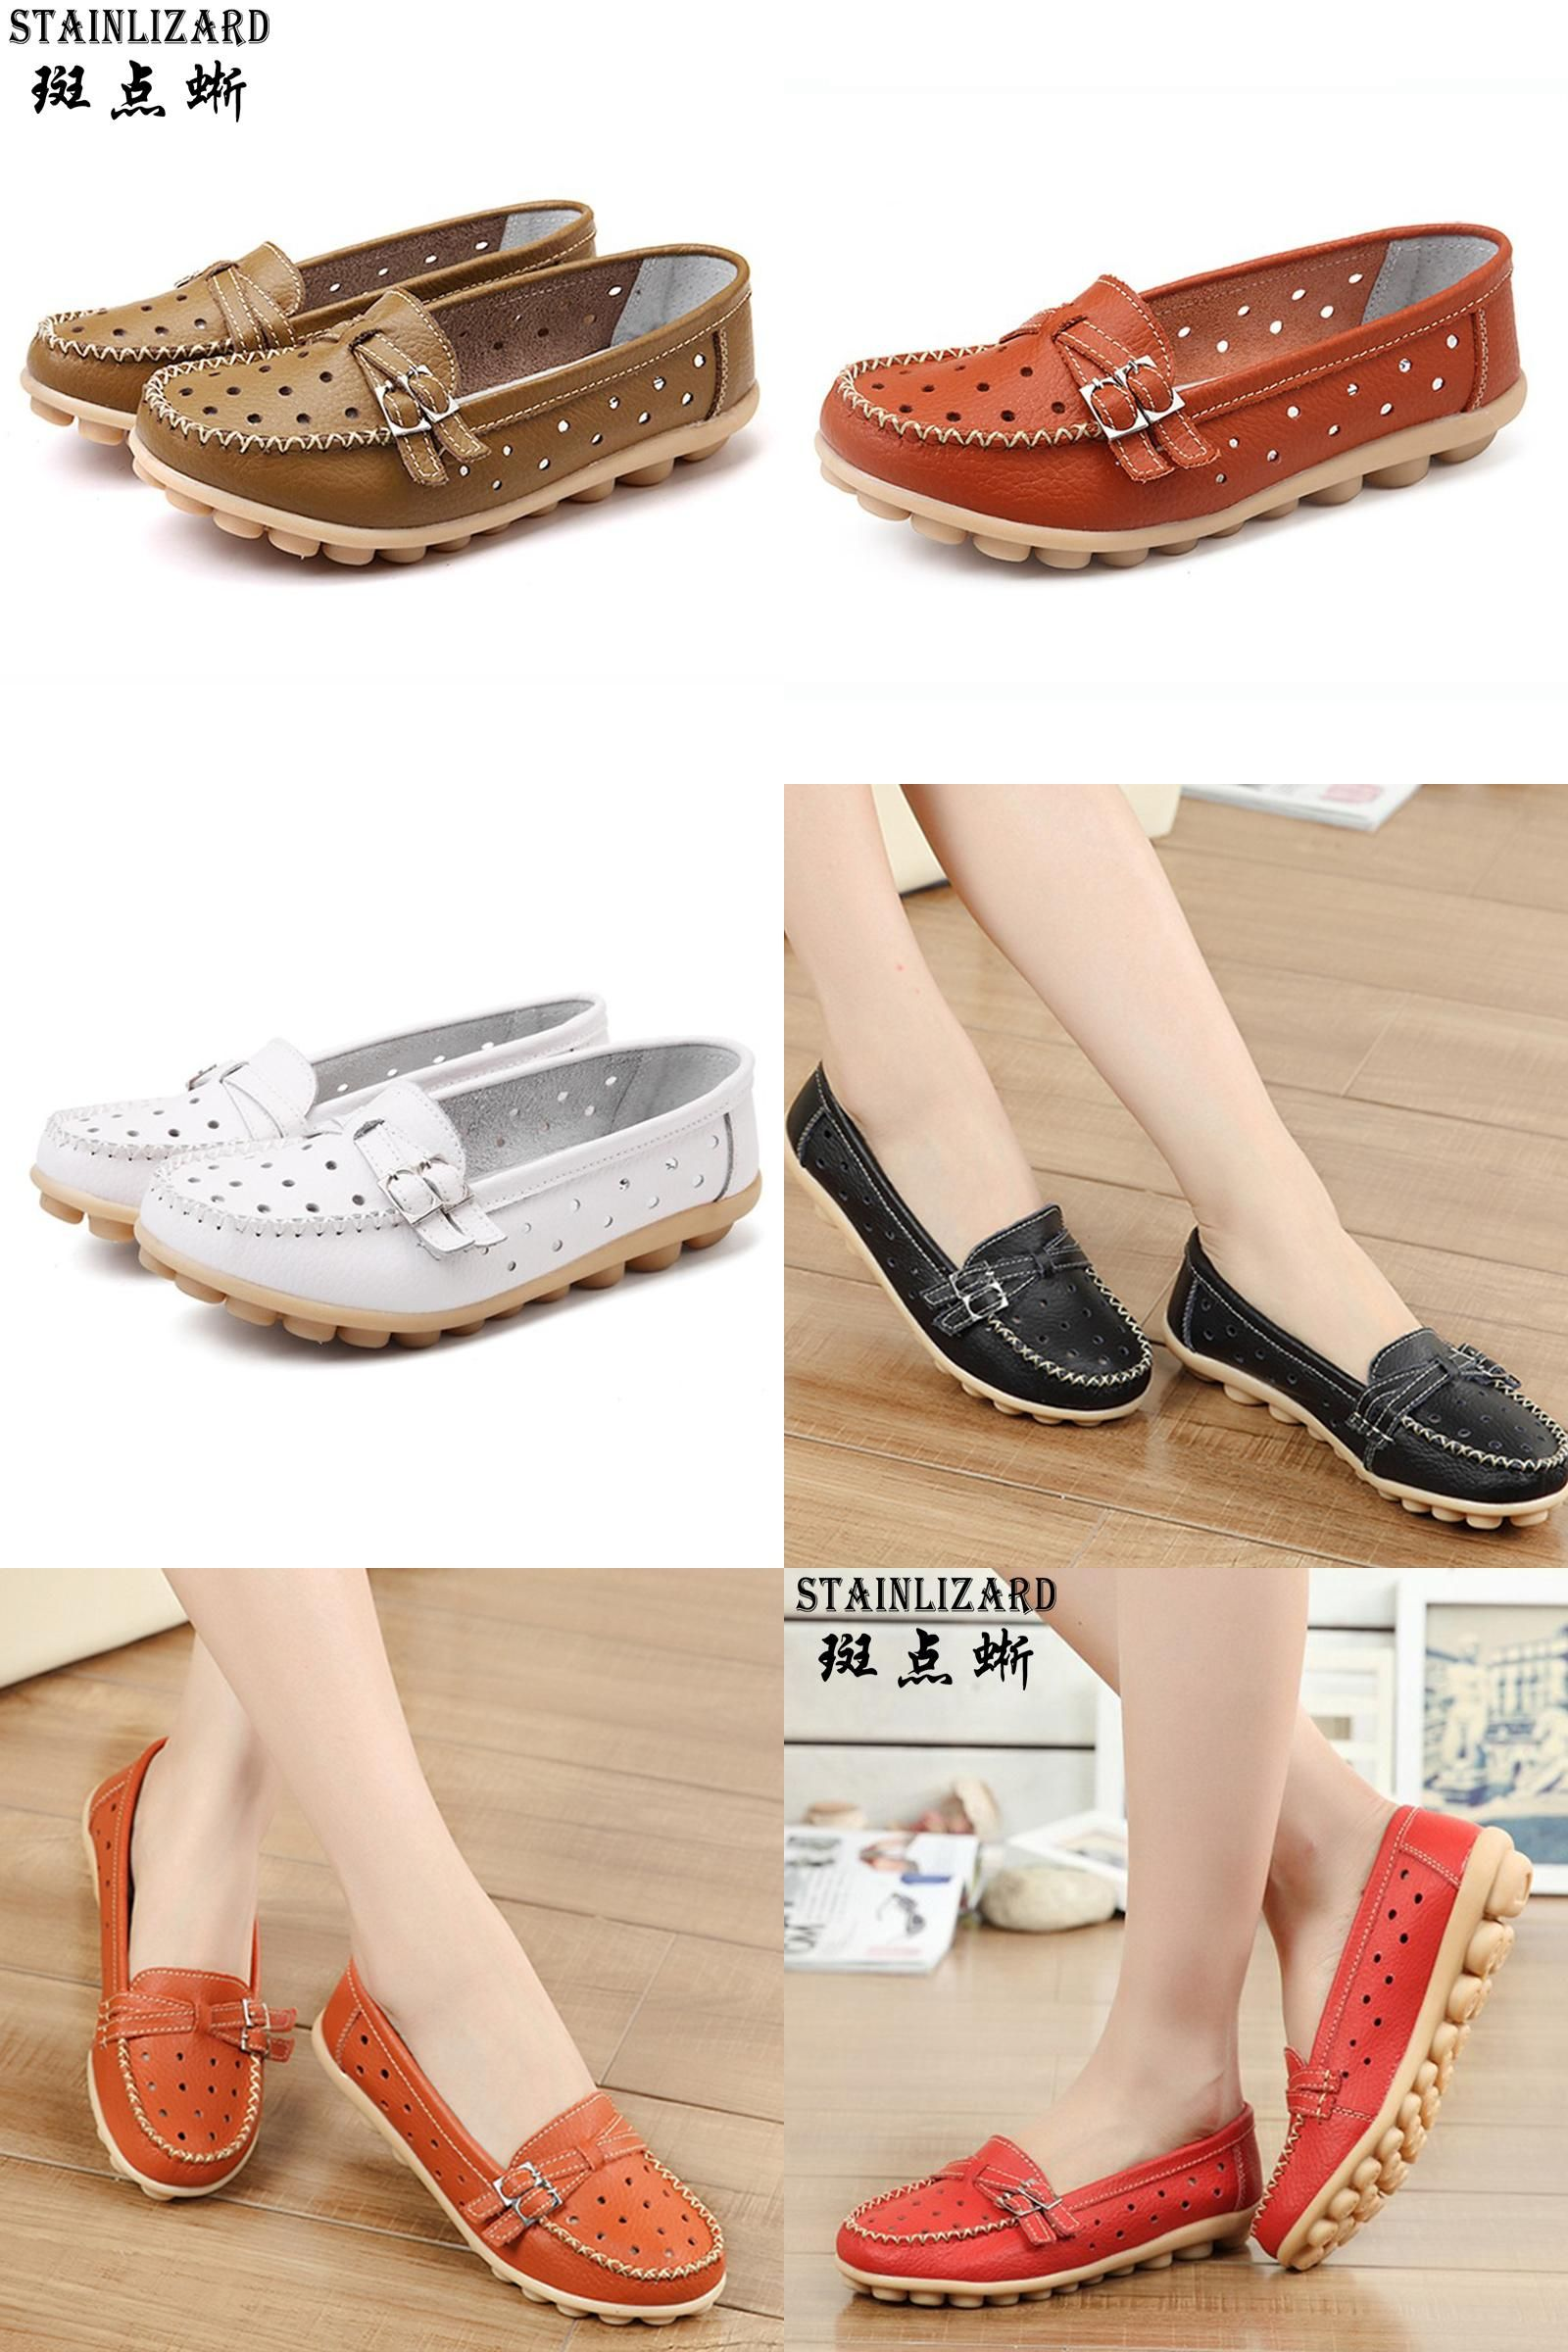 fake for sale brand new unisex online Comfort Fashion Casual Flat Shoes discount outlet discount with credit card n2v5MkS